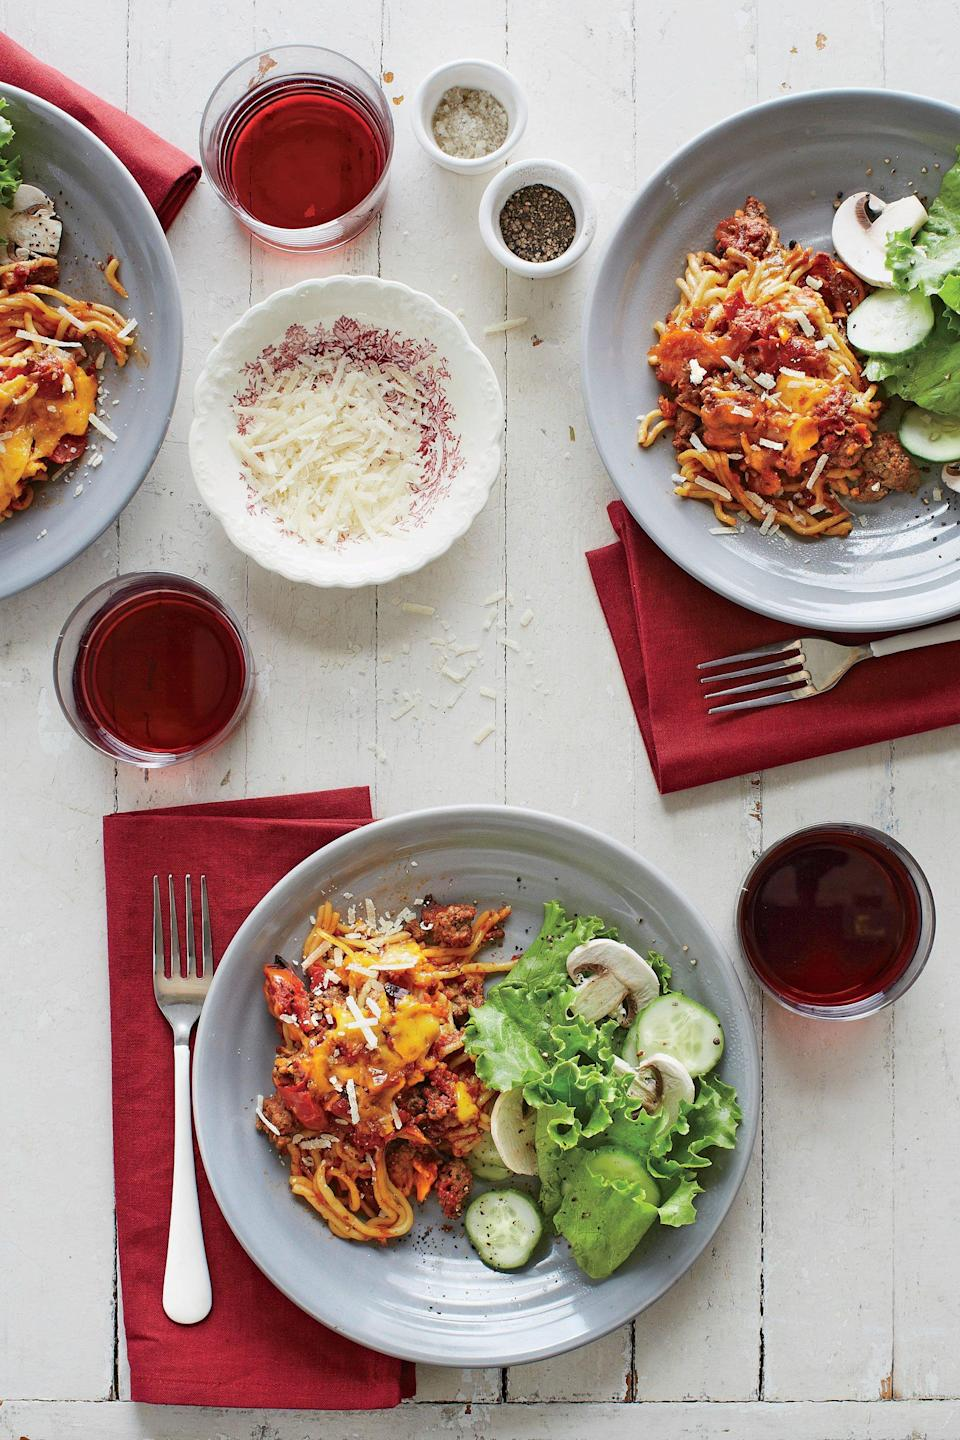 """<p><strong>Recipe: <a href=""""https://www.southernliving.com/recipes/spaghetti-casserole"""" rel=""""nofollow noopener"""" target=""""_blank"""" data-ylk=""""slk:Spaghetti Casserole"""" class=""""link rapid-noclick-resp"""">Spaghetti Casserole</a></strong></p> <p>All your favorite ingredients are featured in this easy slow-cooker version of Spaghetti Casserole.</p>"""